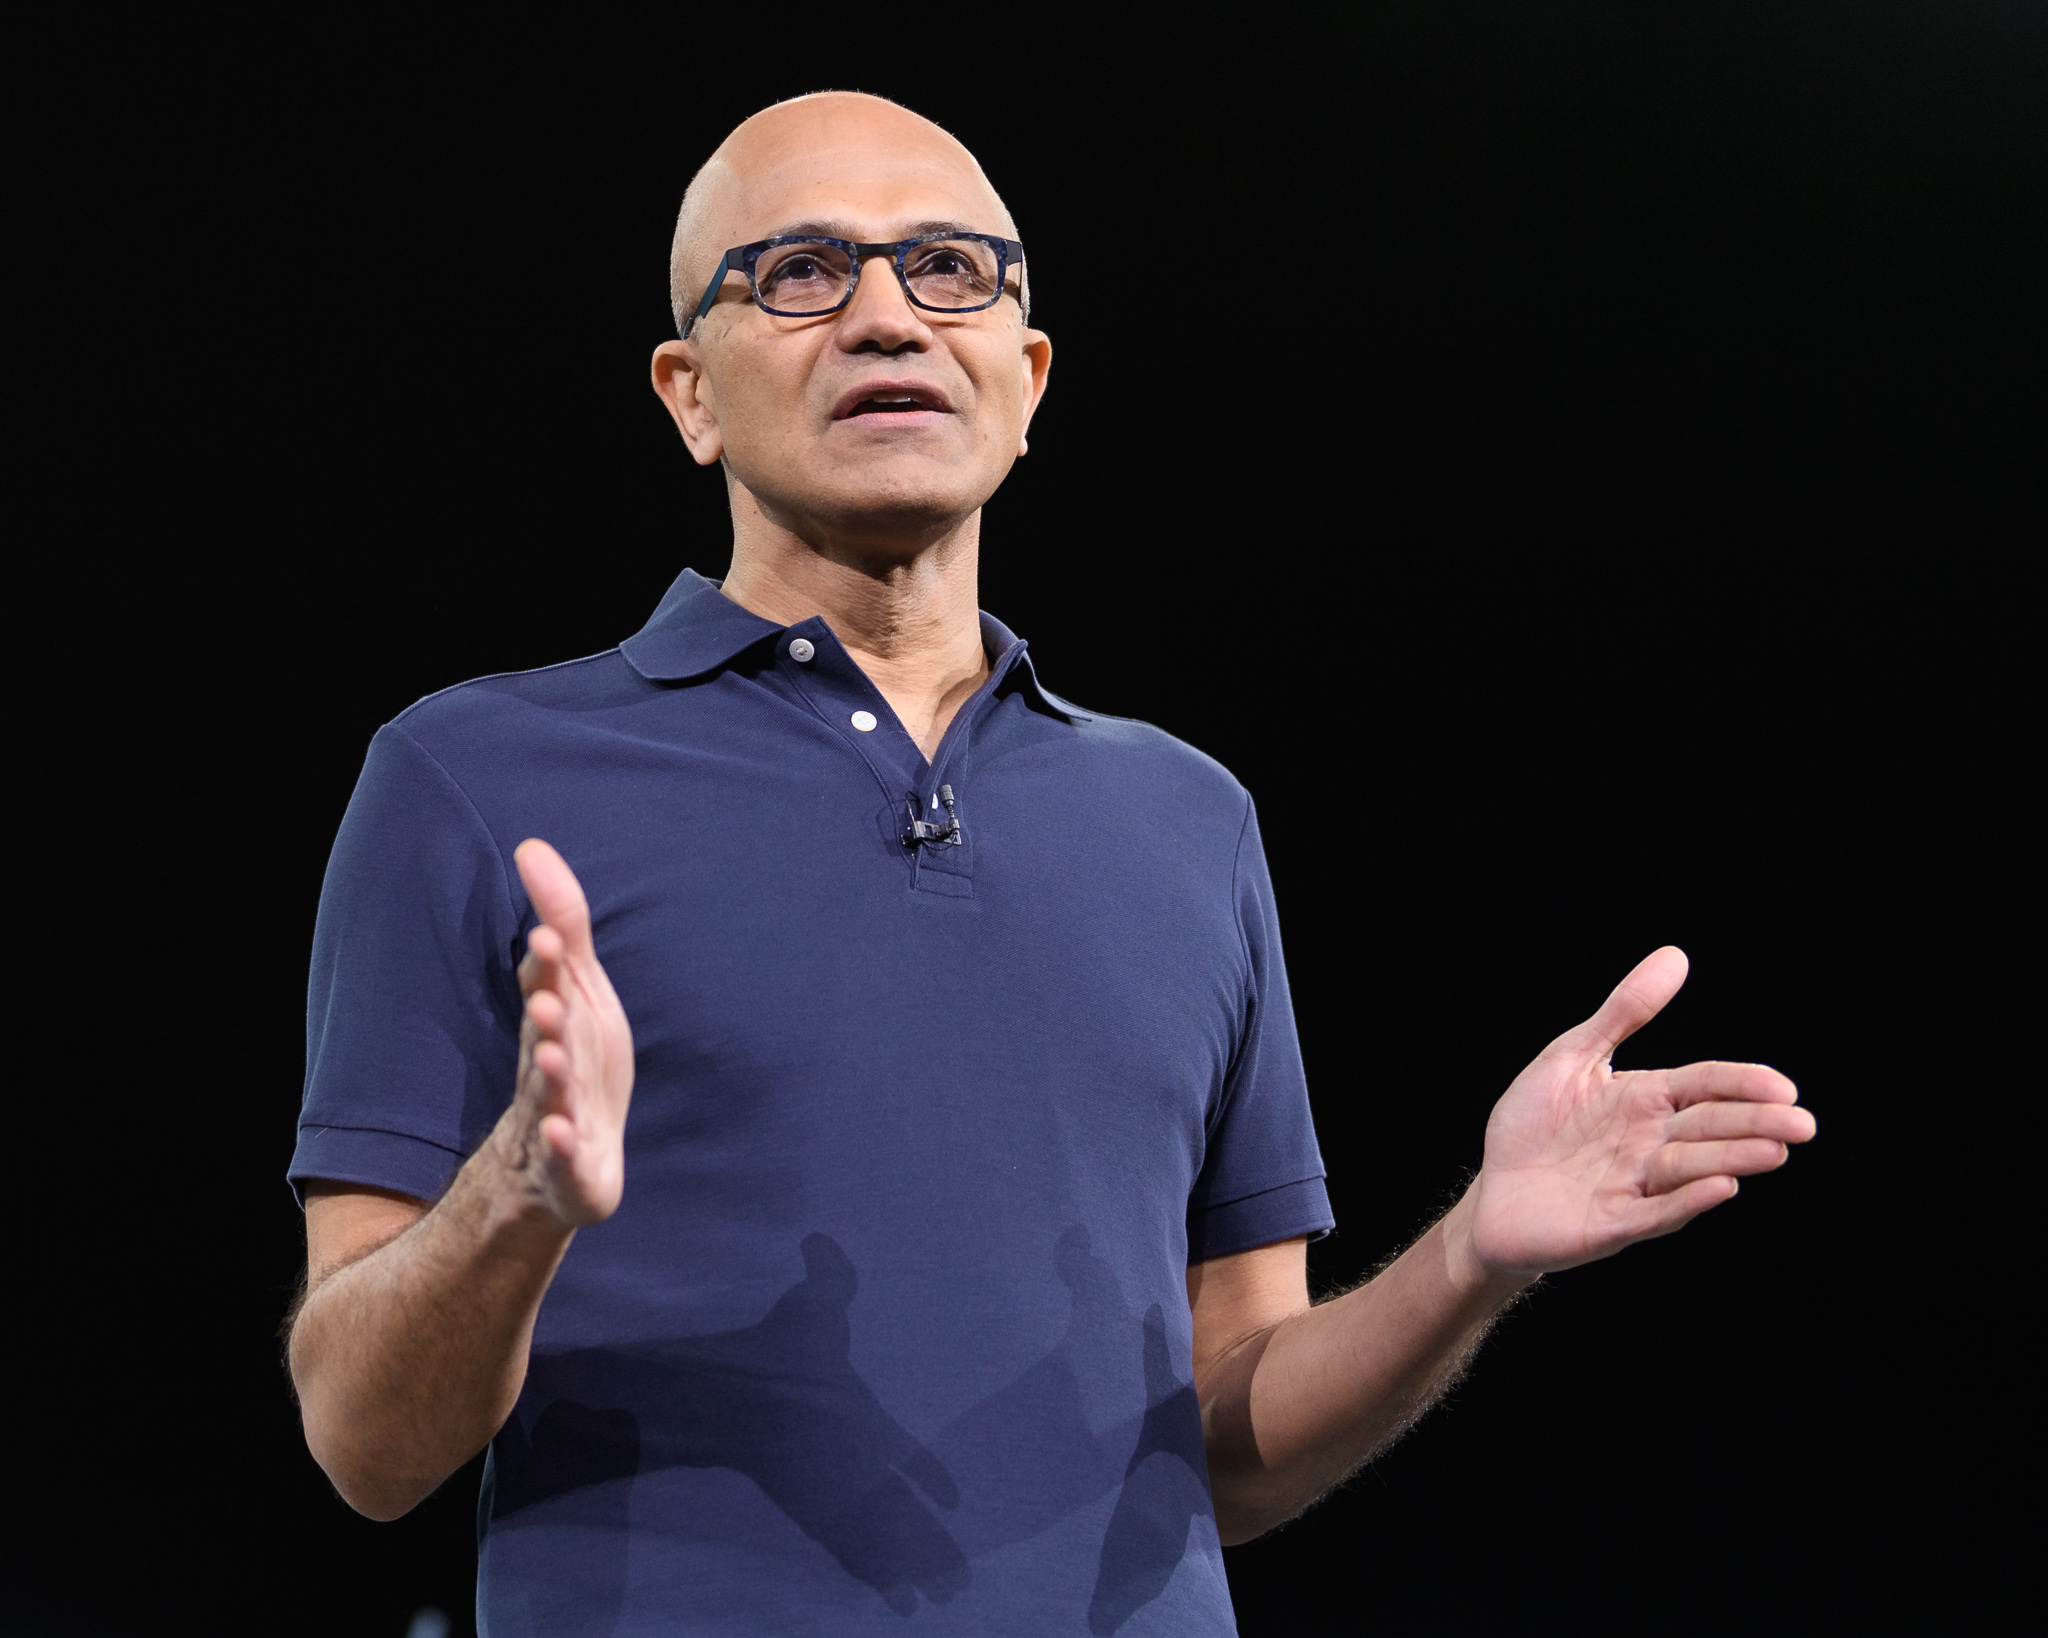 Microsoft CEO Satya Nadella warns of fallout without 'strong national law' on facial recognition - RapidAPI